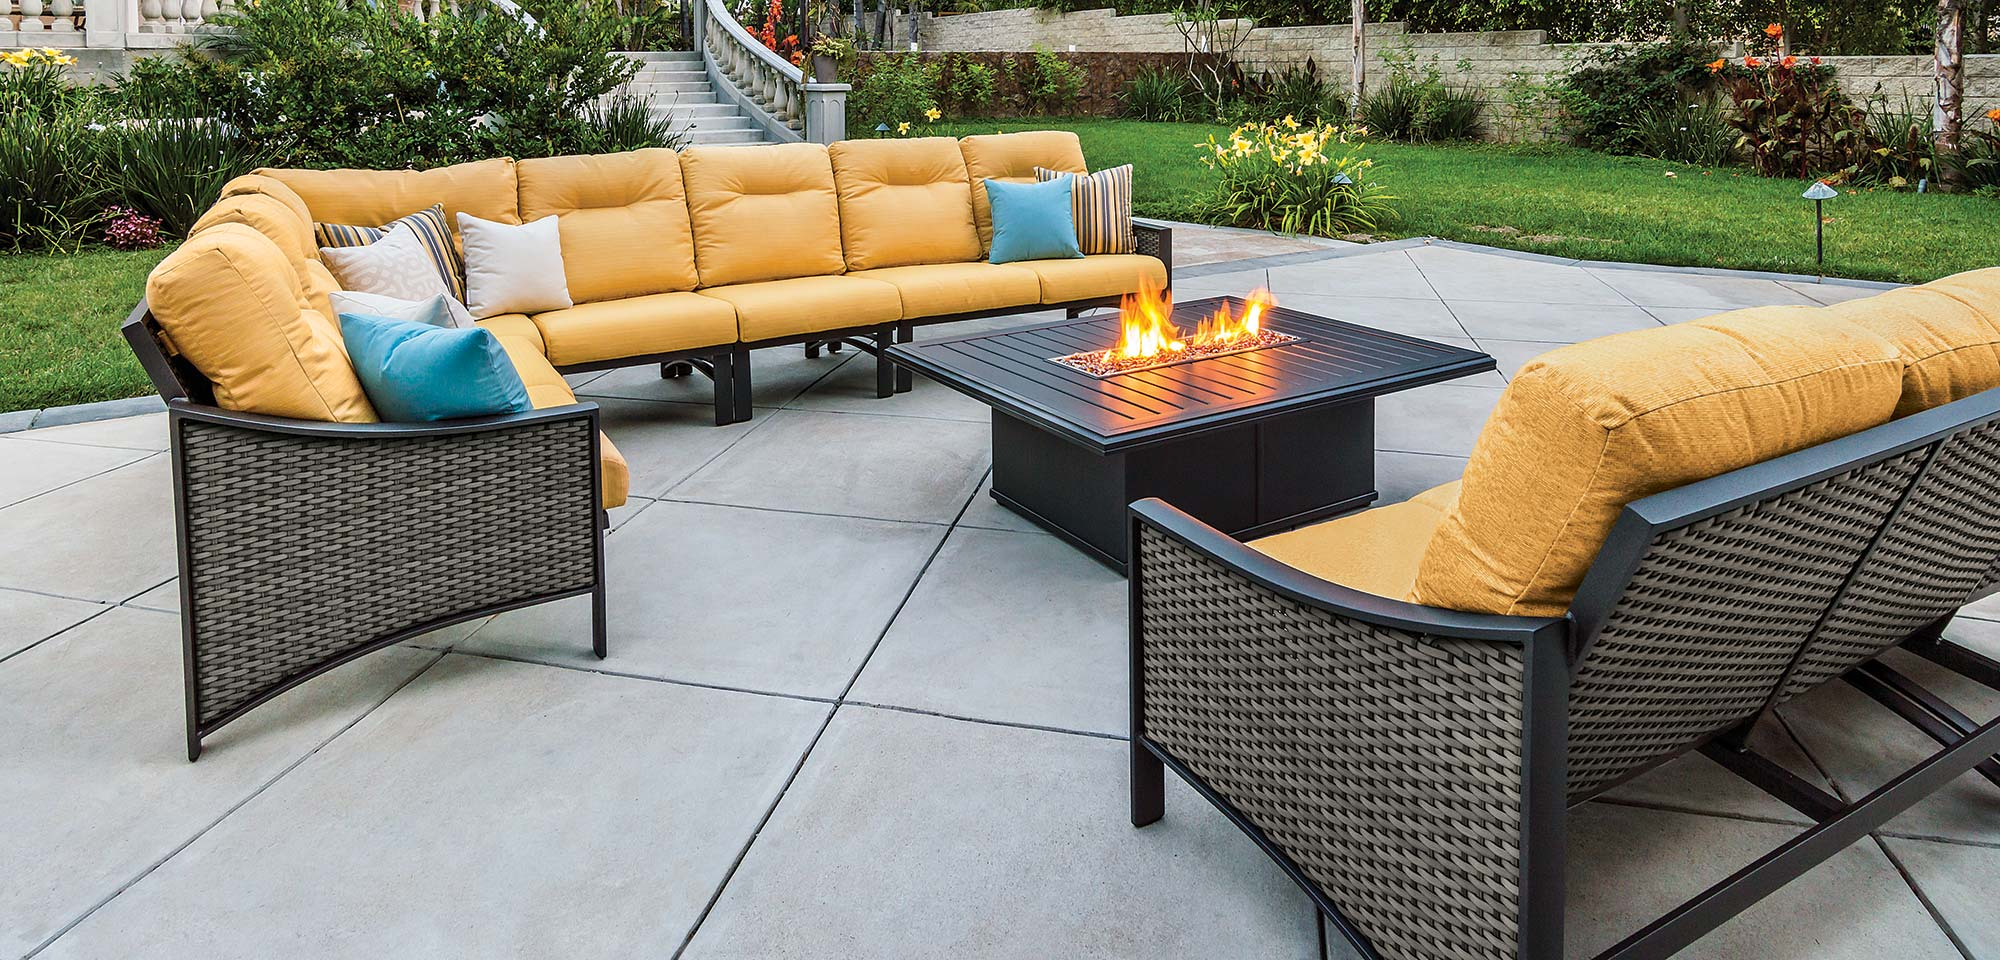 Patio furniture outdoor patio furniture sets for Outdoor furniture images